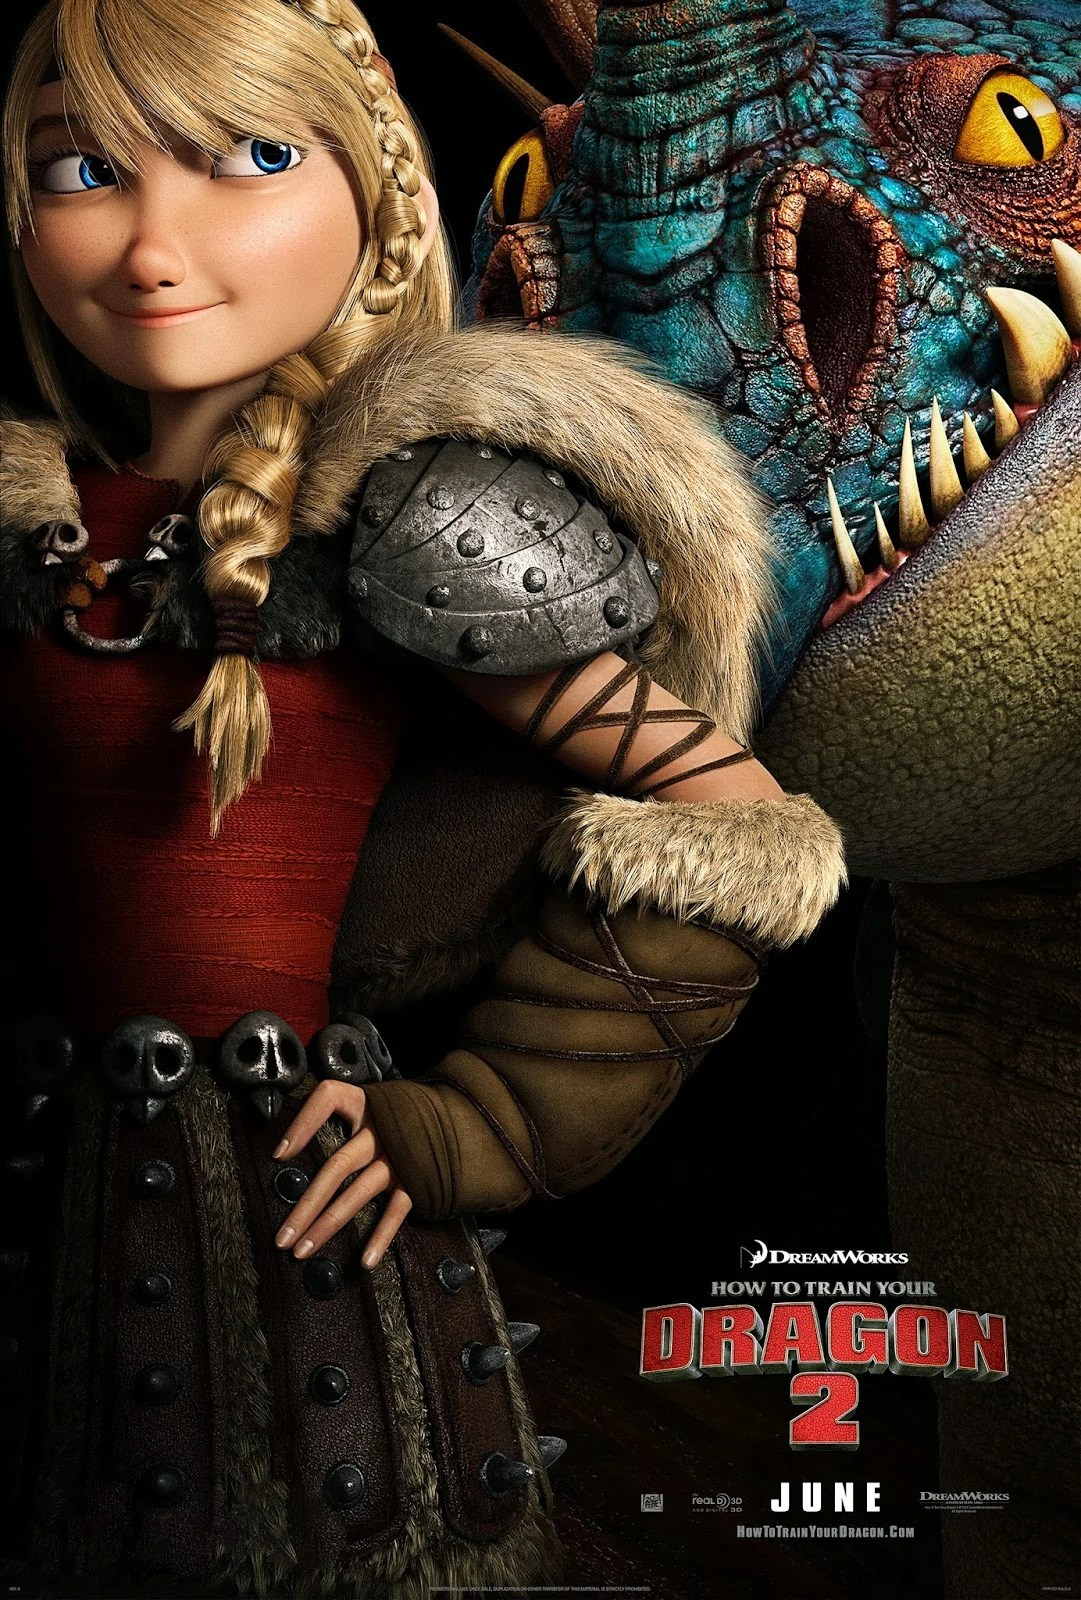 How to Train Your Dragon 2 (Western Animation) - TV Tropes